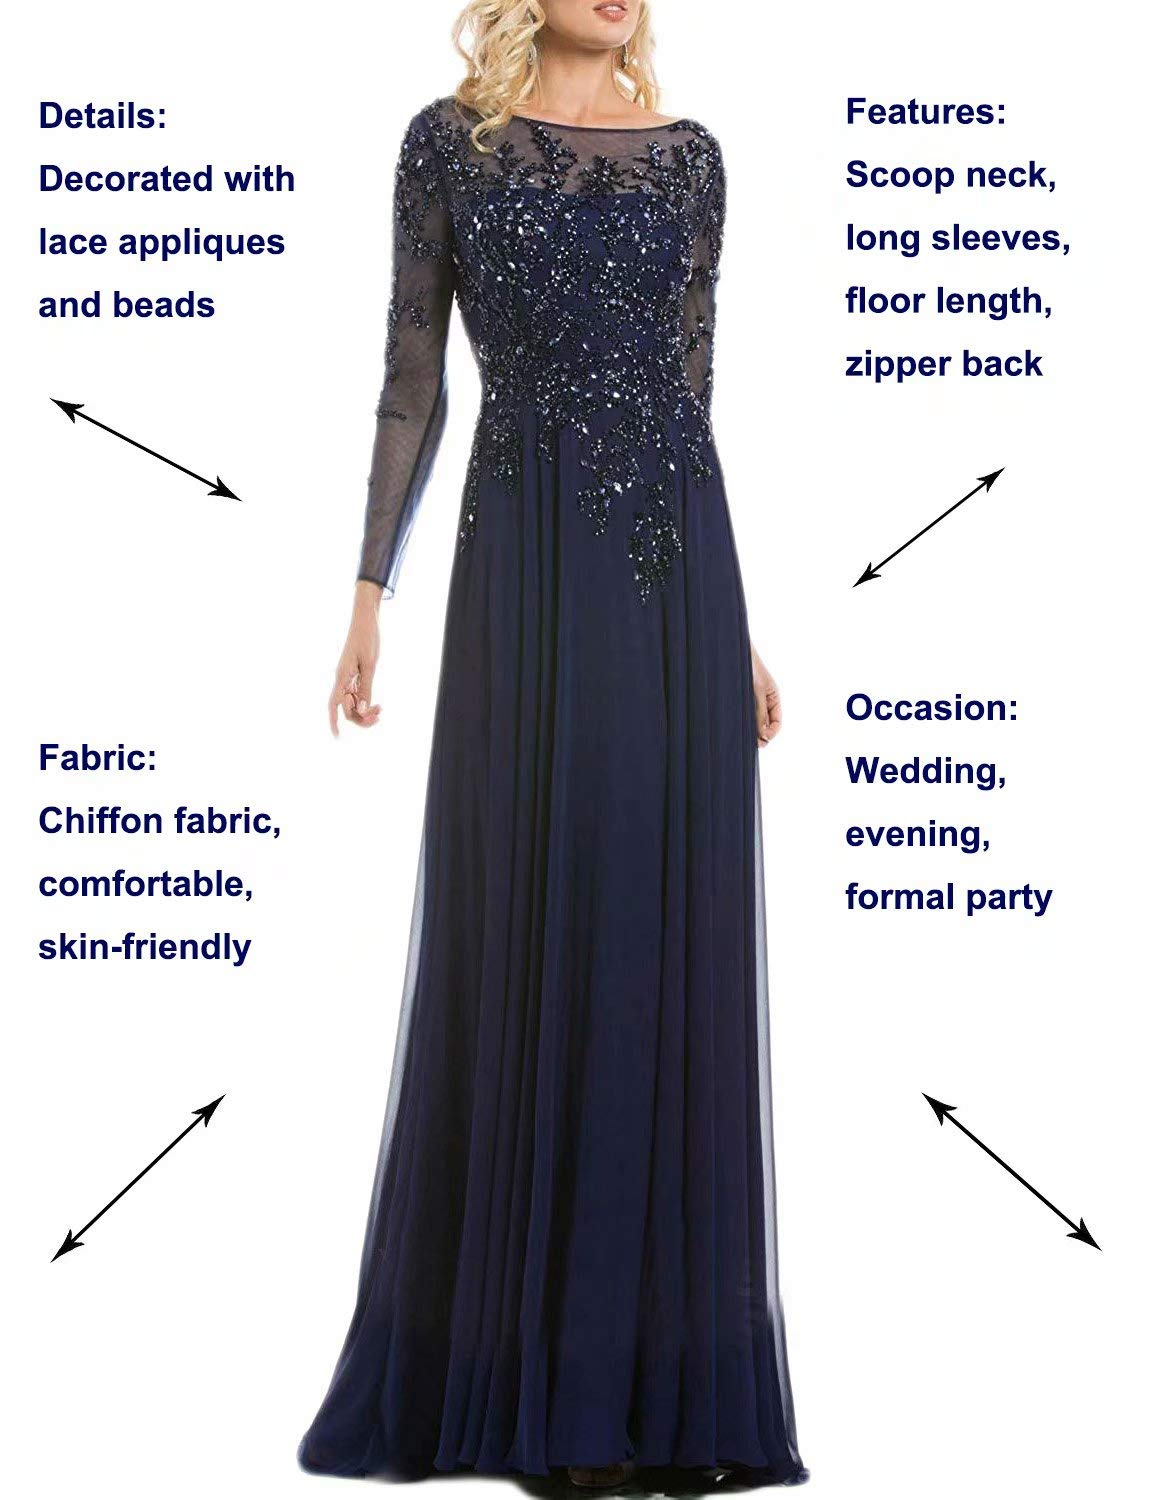 A Line Chiffon Plus Size Party Dresses 2019 Formal Ball Gown Manual Beaded  Long Sleeves Scoop Neck Full Length Evening Dress for Women Empire Waist ...